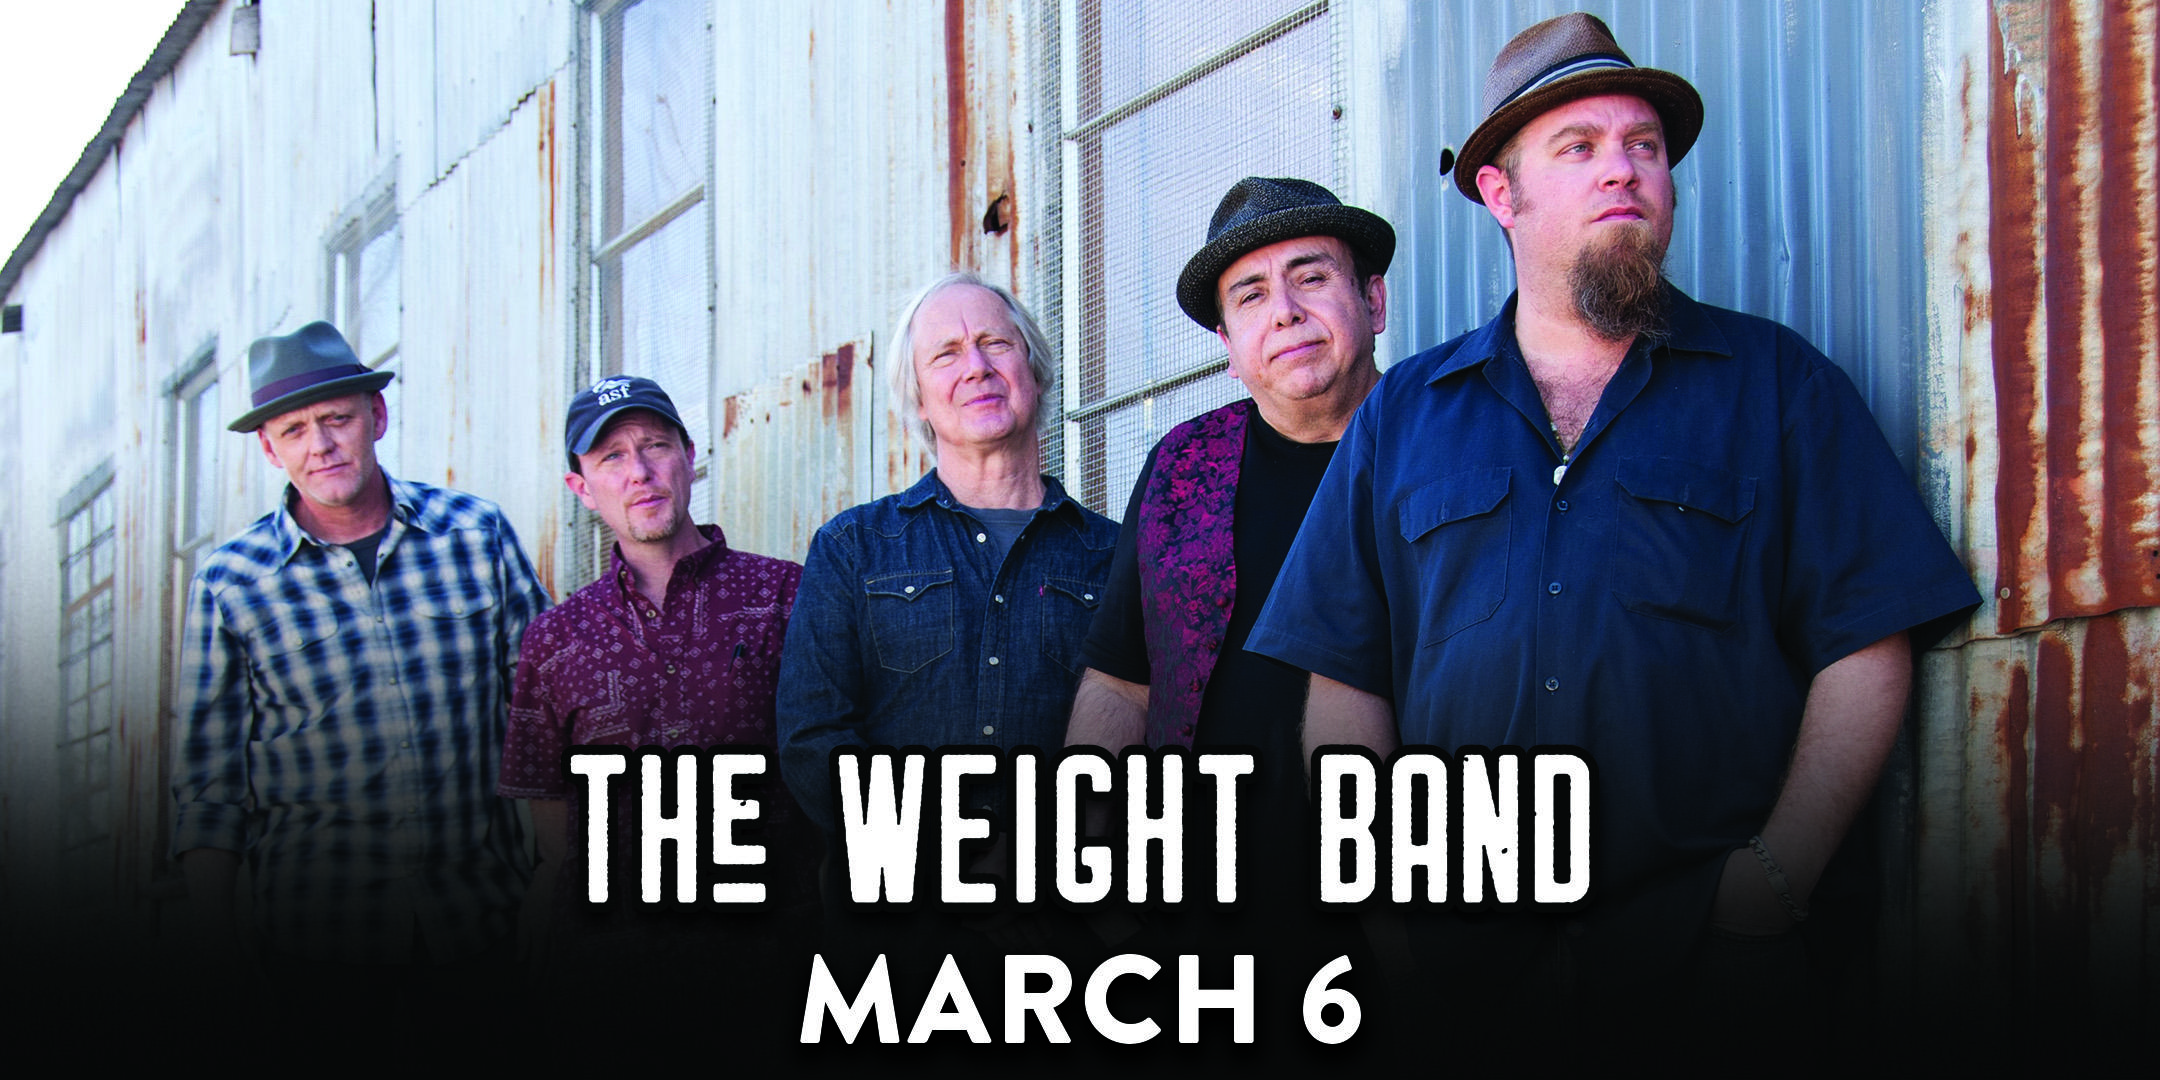 The Weight Band feat. members of The Band and Levon Helm Band